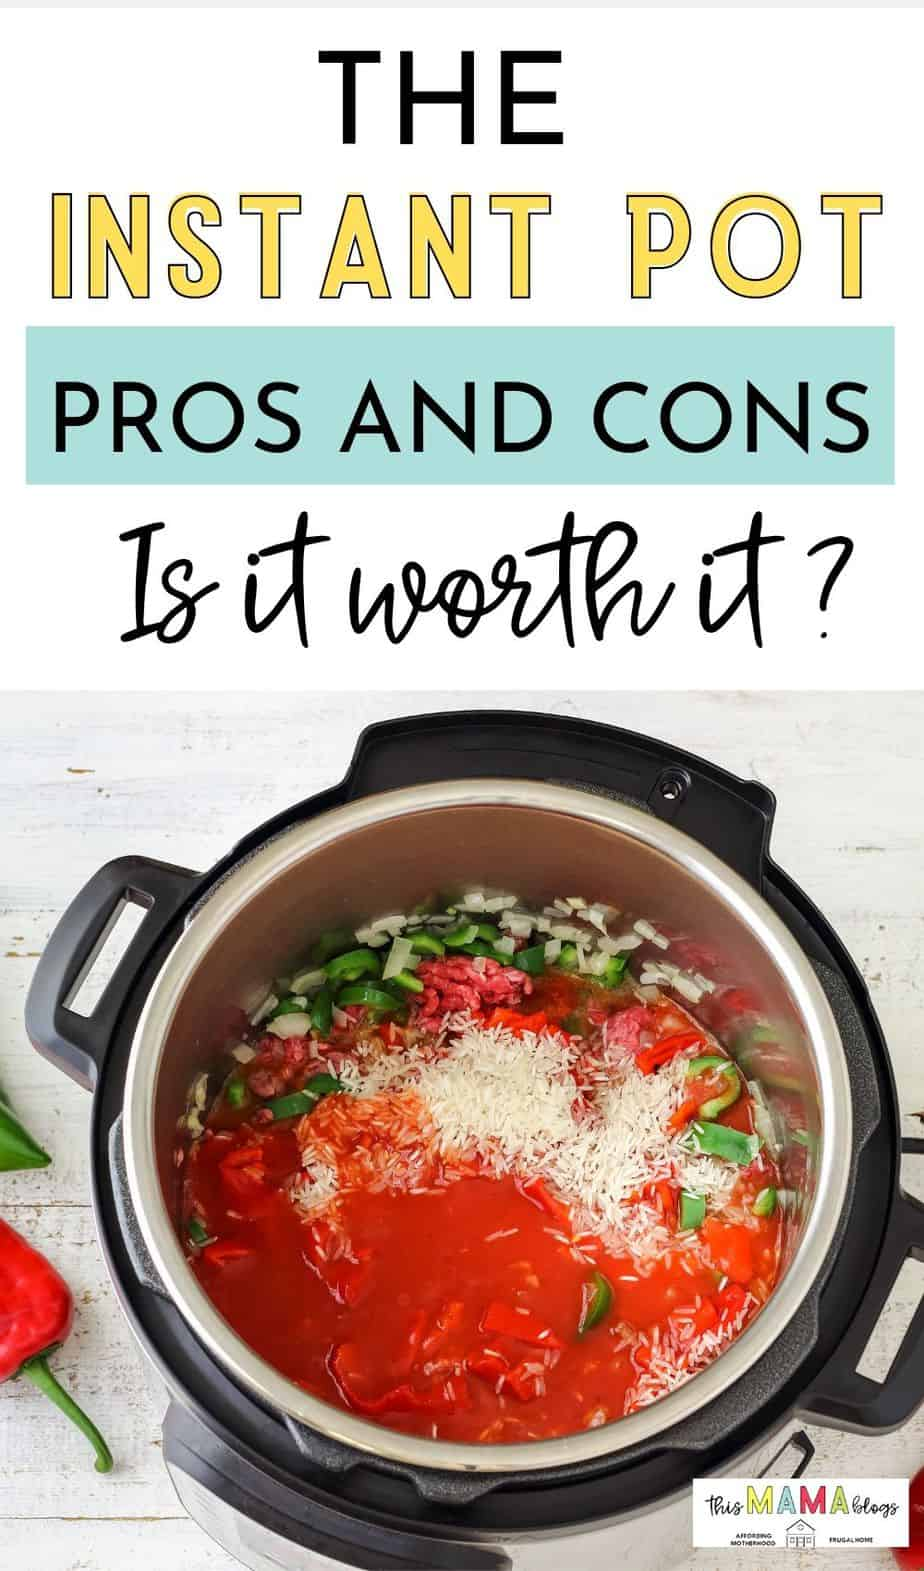 Should you buy an instant pot? Is an instant pot worth it?  What is so great about an instant pot? Read the Instant Pot pros and cons and whether it can really help you save money on food!